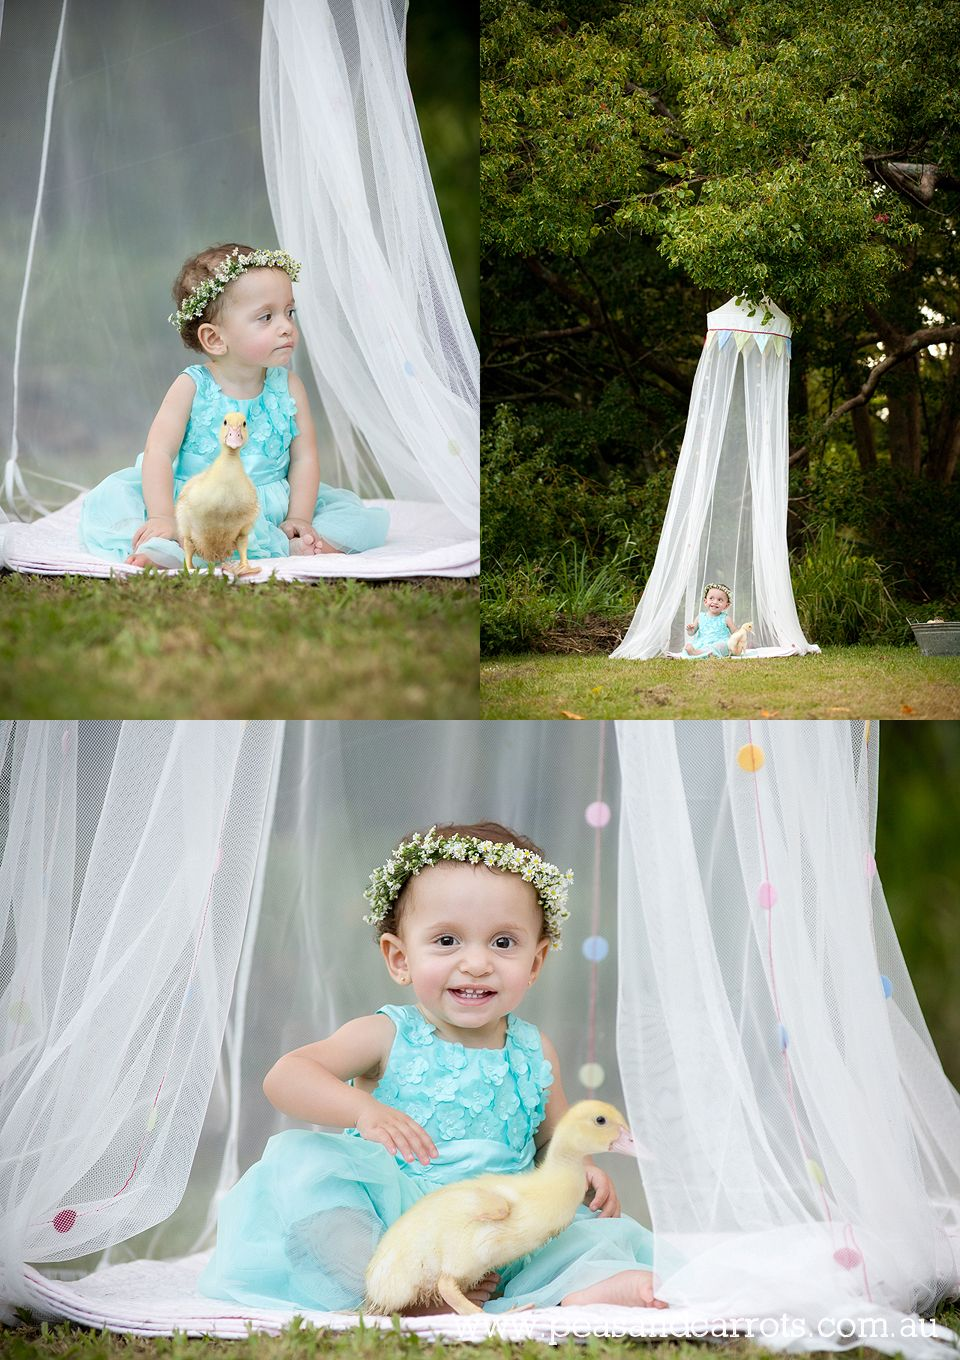 ... Portrait Photography ~ Peas u0026 Carrots Photography. Award winning children. Baby girl and duckling sitting under the trees together in a canopy tent.  sc 1 st  Pinterest & Brisbane Baby Children u0026 Family Portrait Photography ~ Peas ...